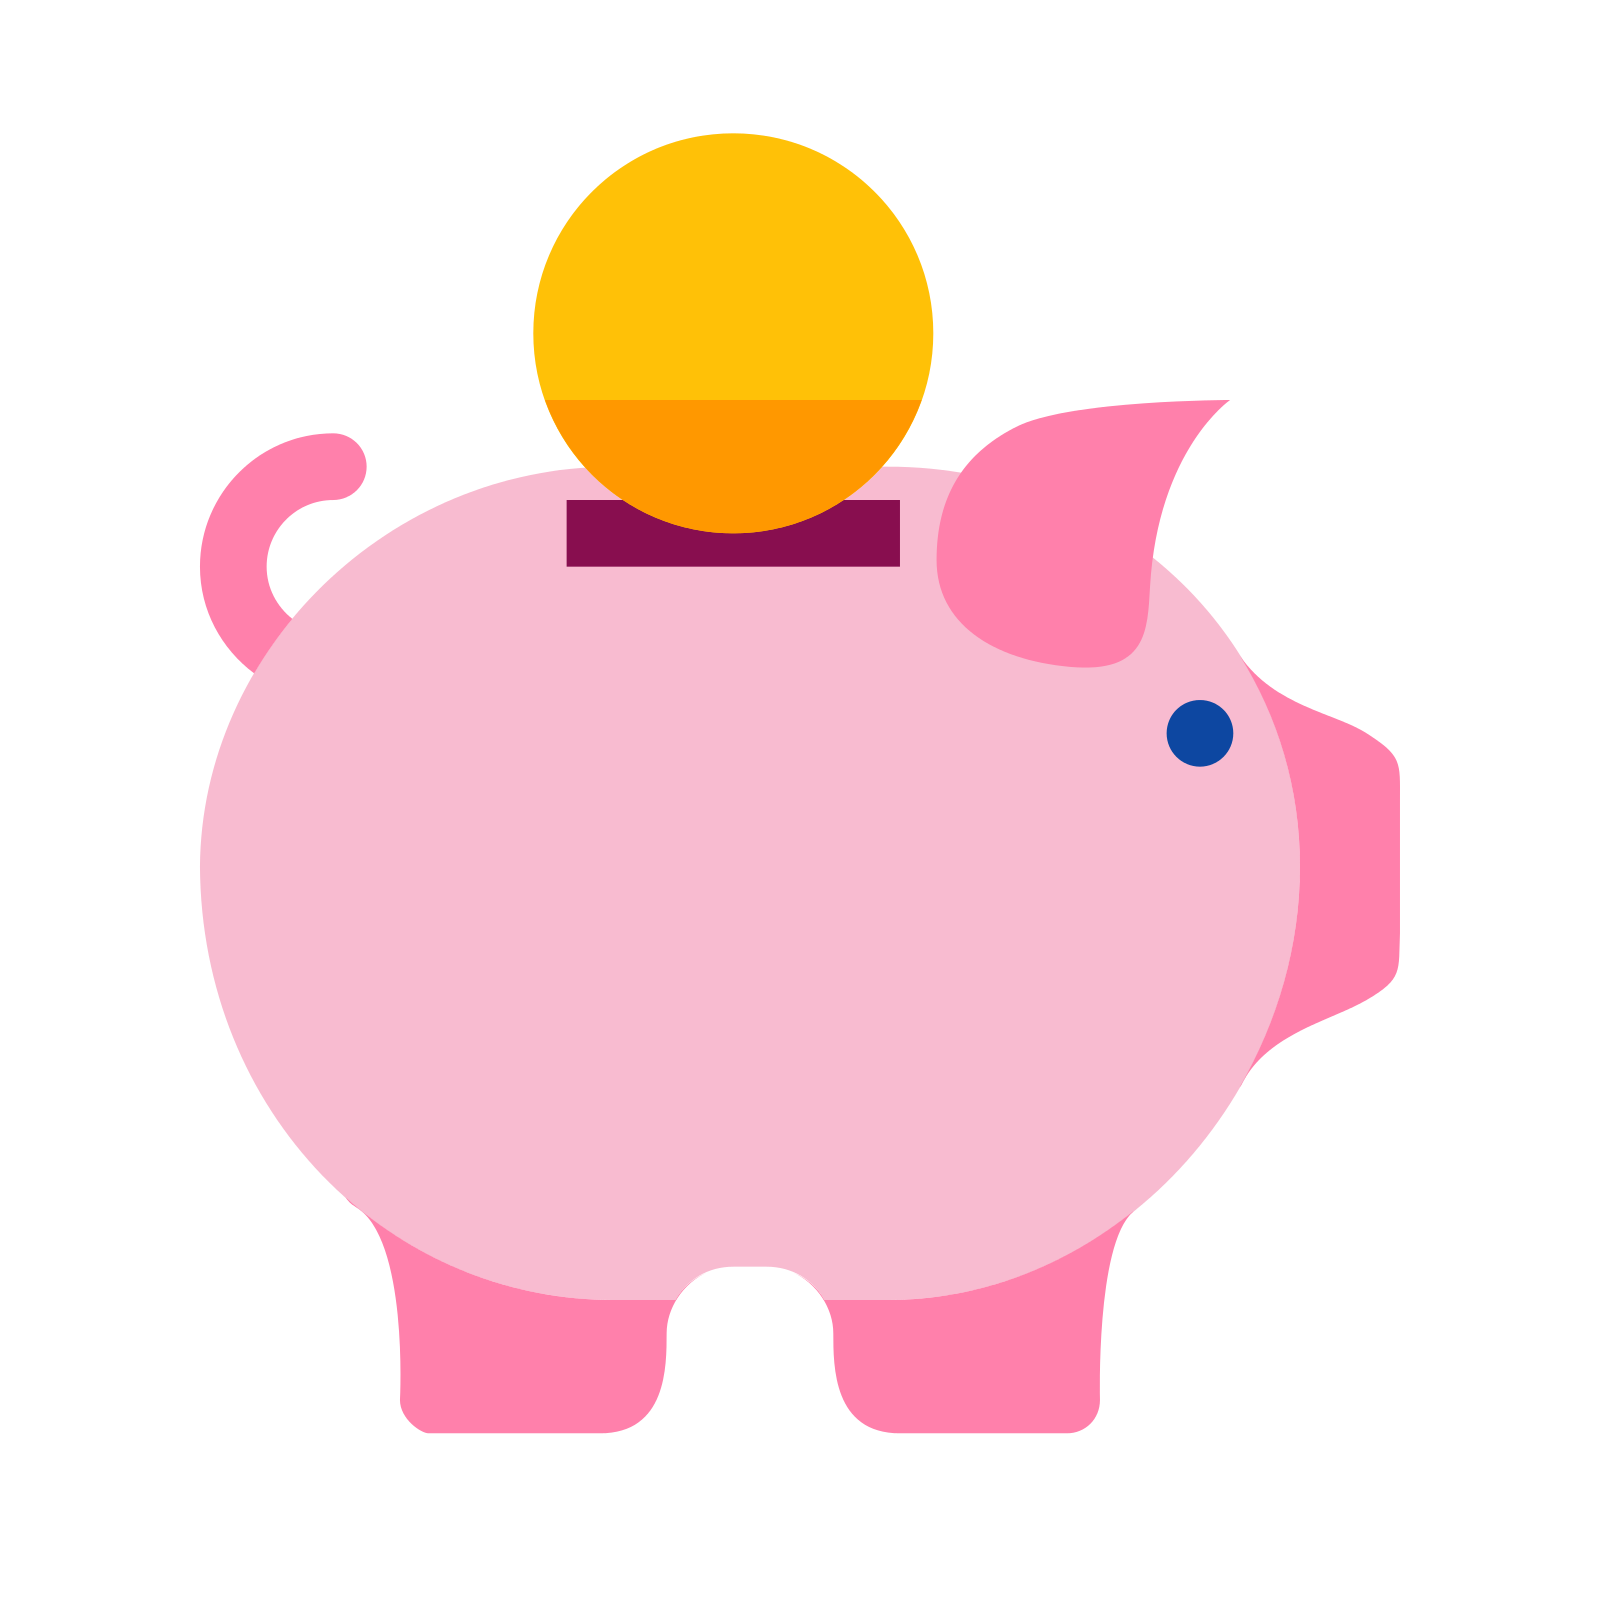 Words clipart money. Cute piggy bank free